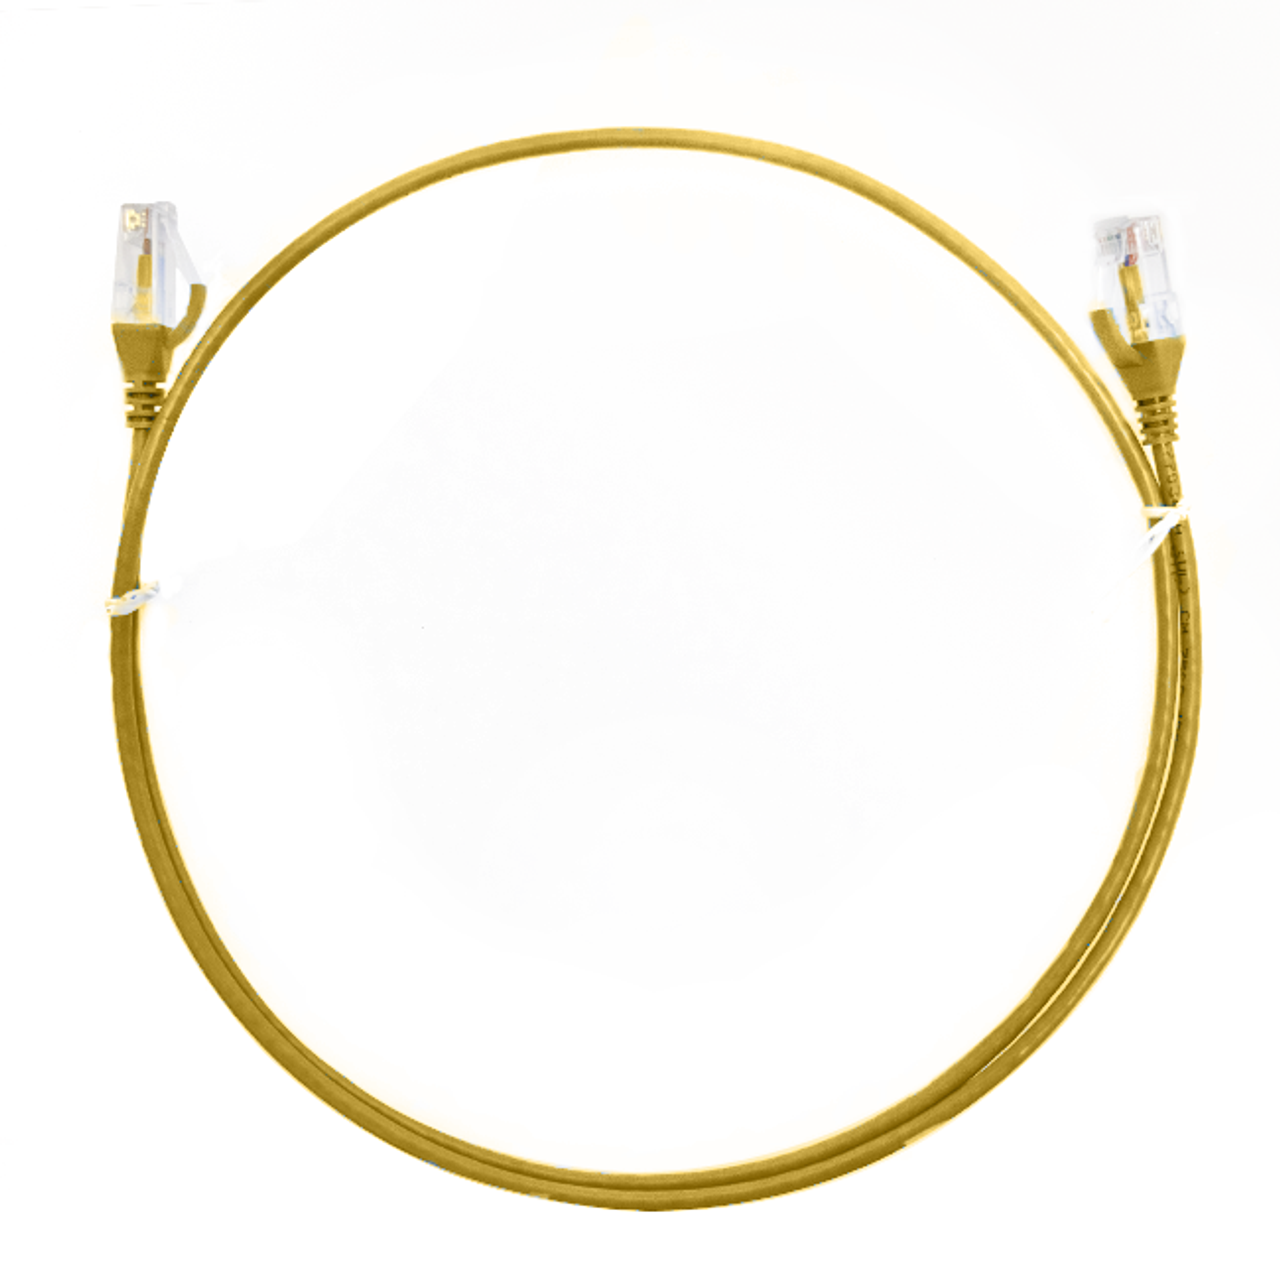 Image for 0.5m Cat 6 Ultra Thin LSZH Ethernet Network Cables: Yellow CX Computer Superstore